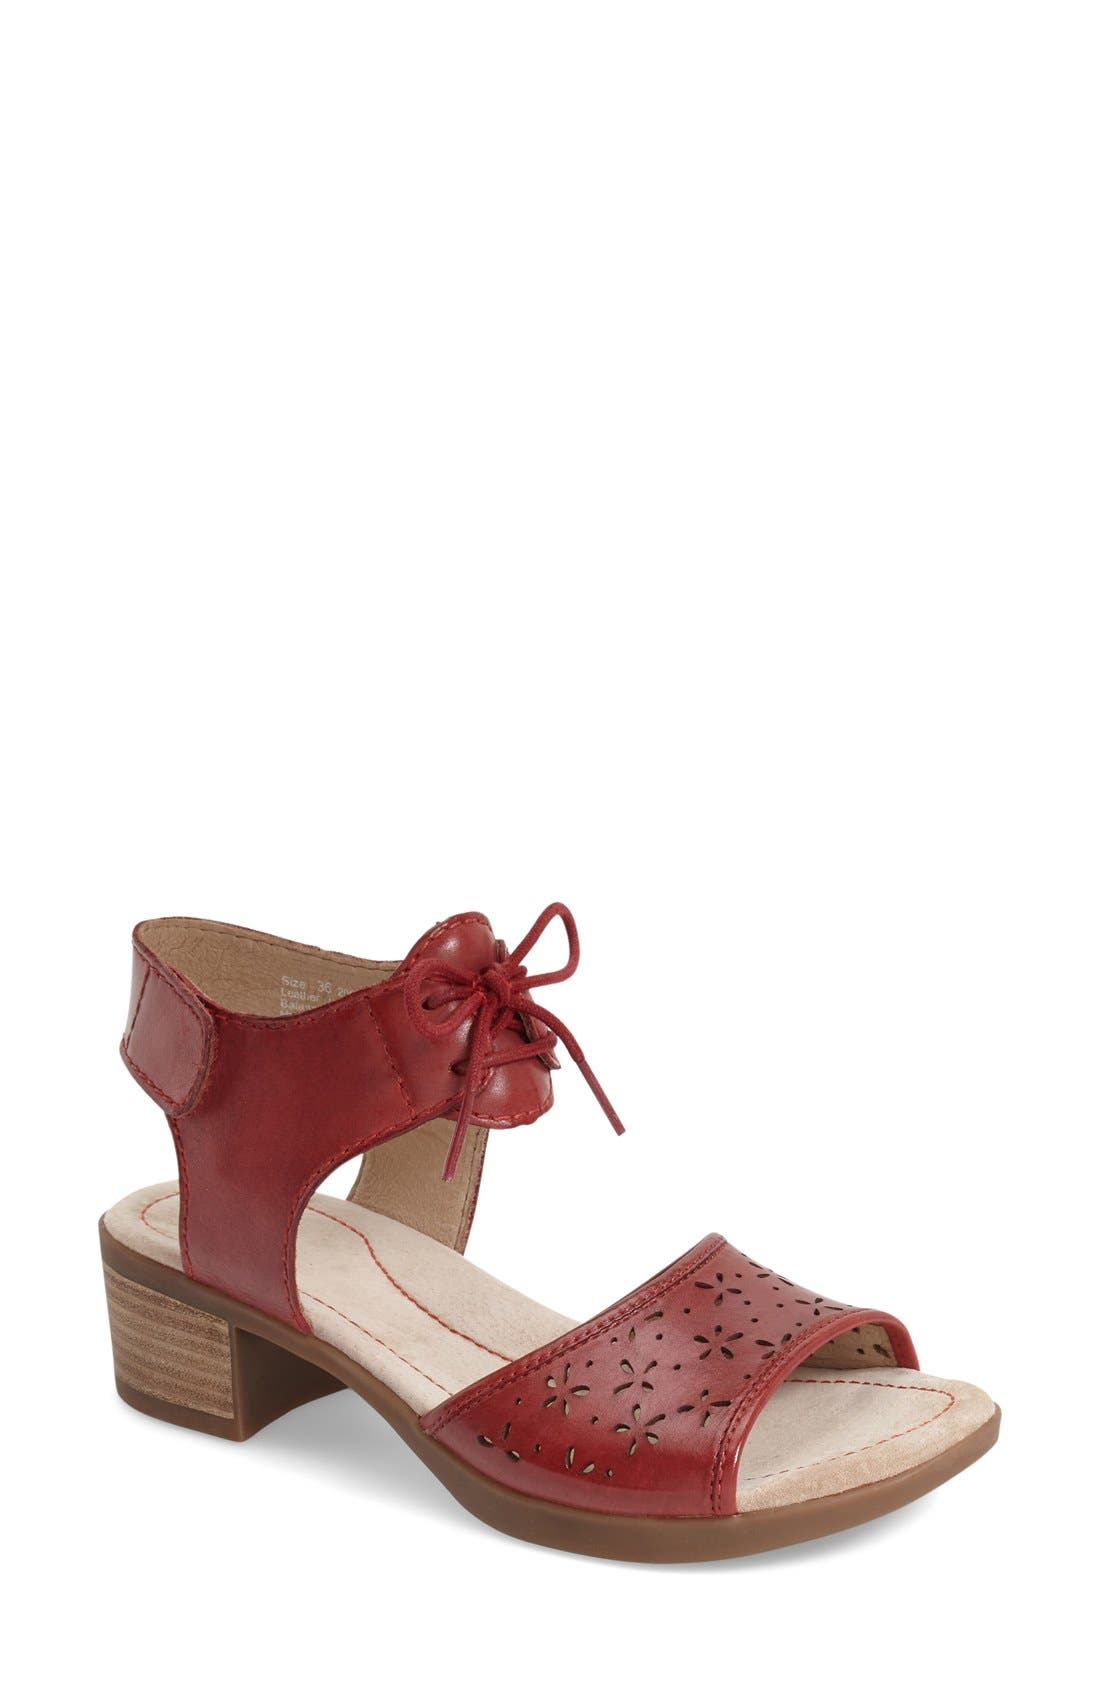 DANSKO Liz Lace-Up Block Heel Sandal